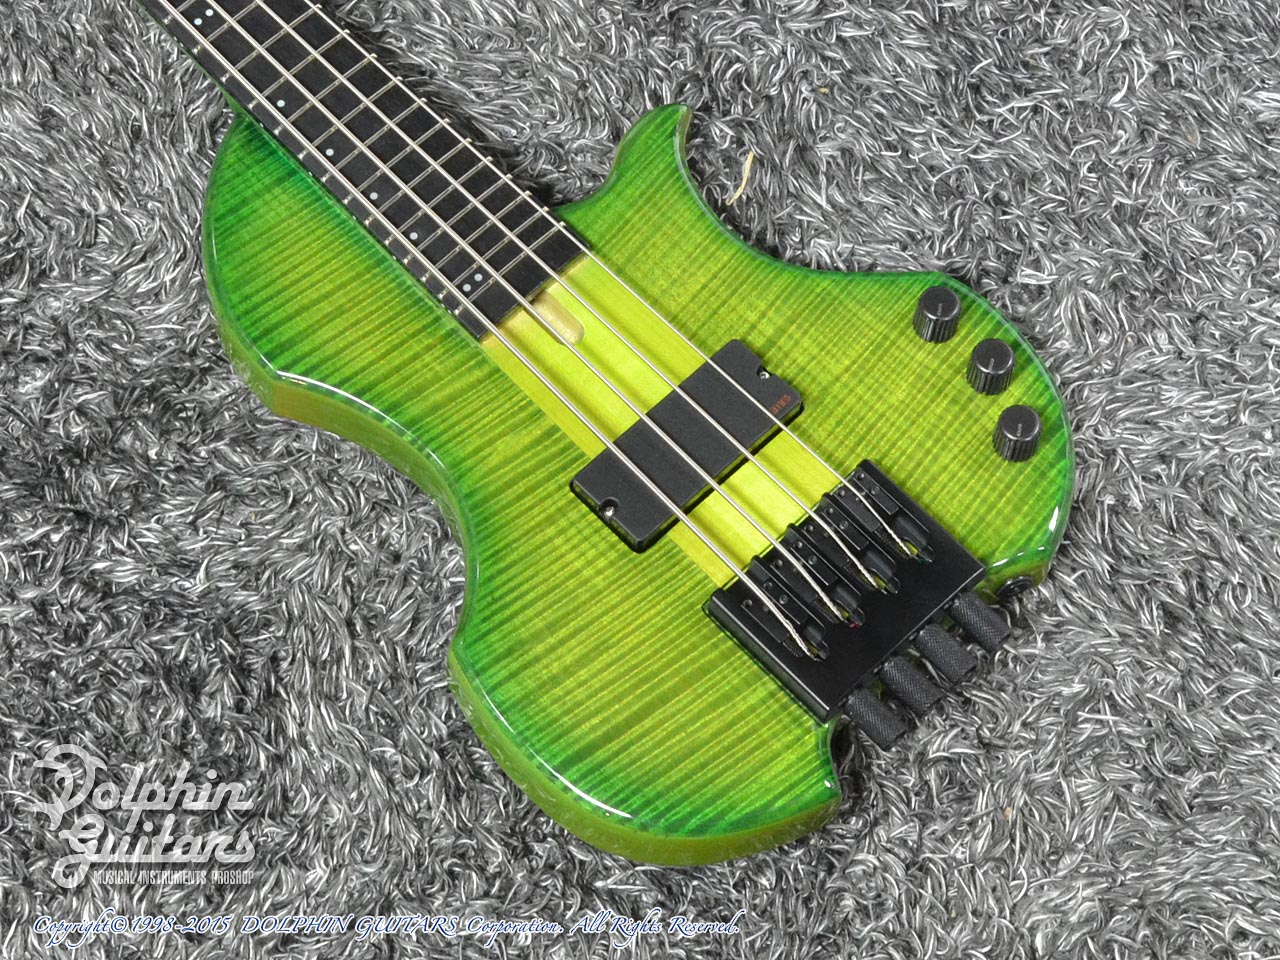 Charo's: CH-B4 Compact Headless Bass (Curly Maple & Alder) (Tropical Forest) (1)